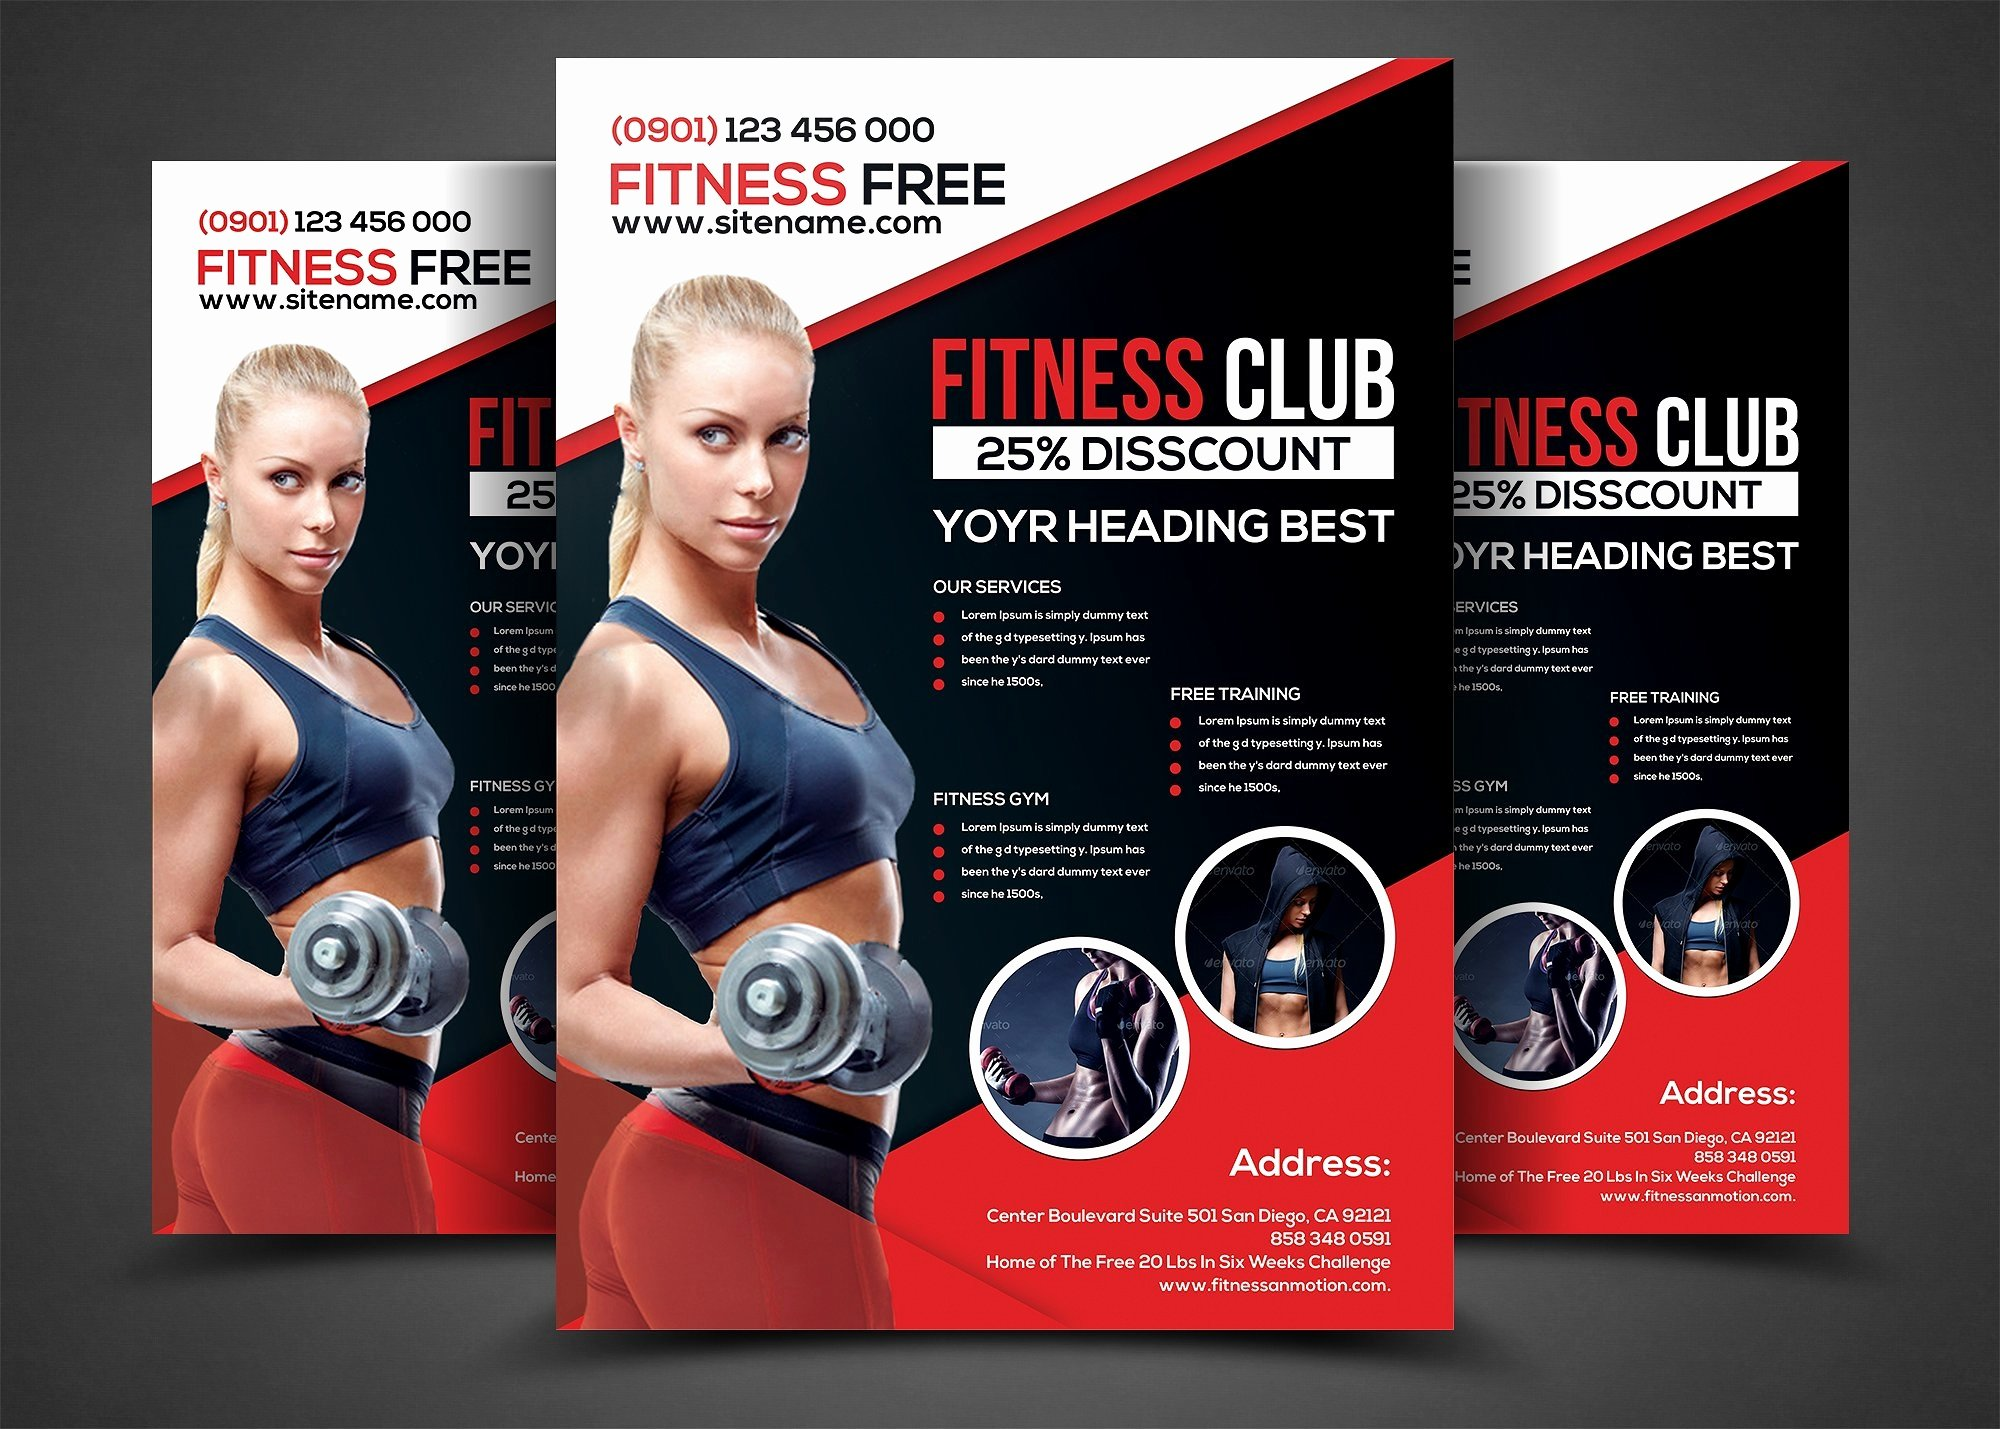 Personal Trainer Flyer Template Inspirational 14 Gym Flyer Designs & Examples Psd Ai